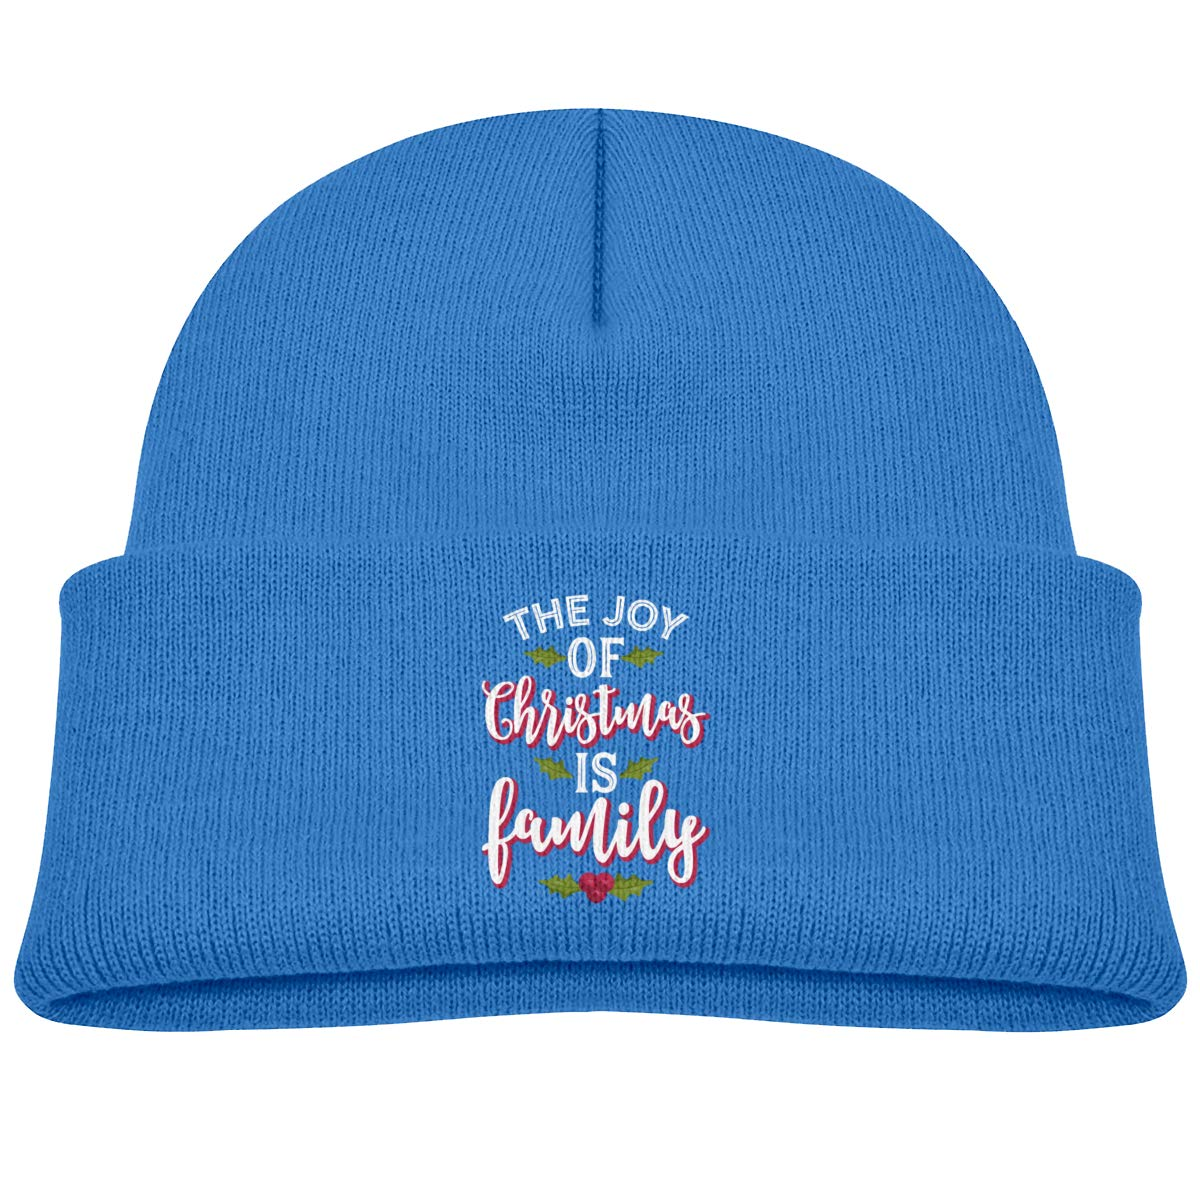 The Joy of Christmas is Family Infant Knit Hats Baby Beanie Cap